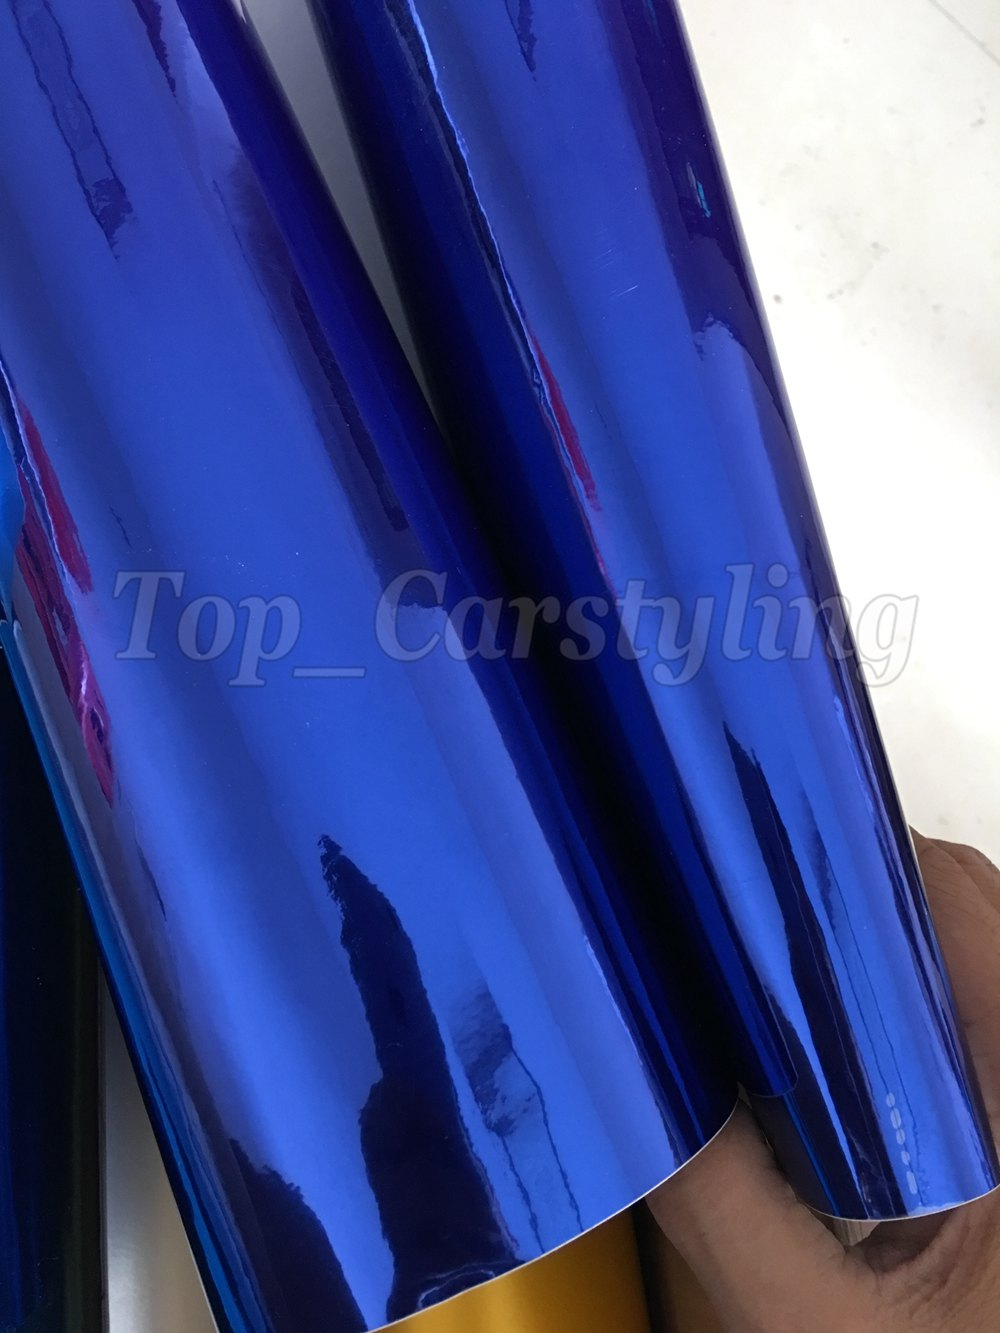 chrome blue mirror stm hexis car wrapping film high stretchable flexible (8)